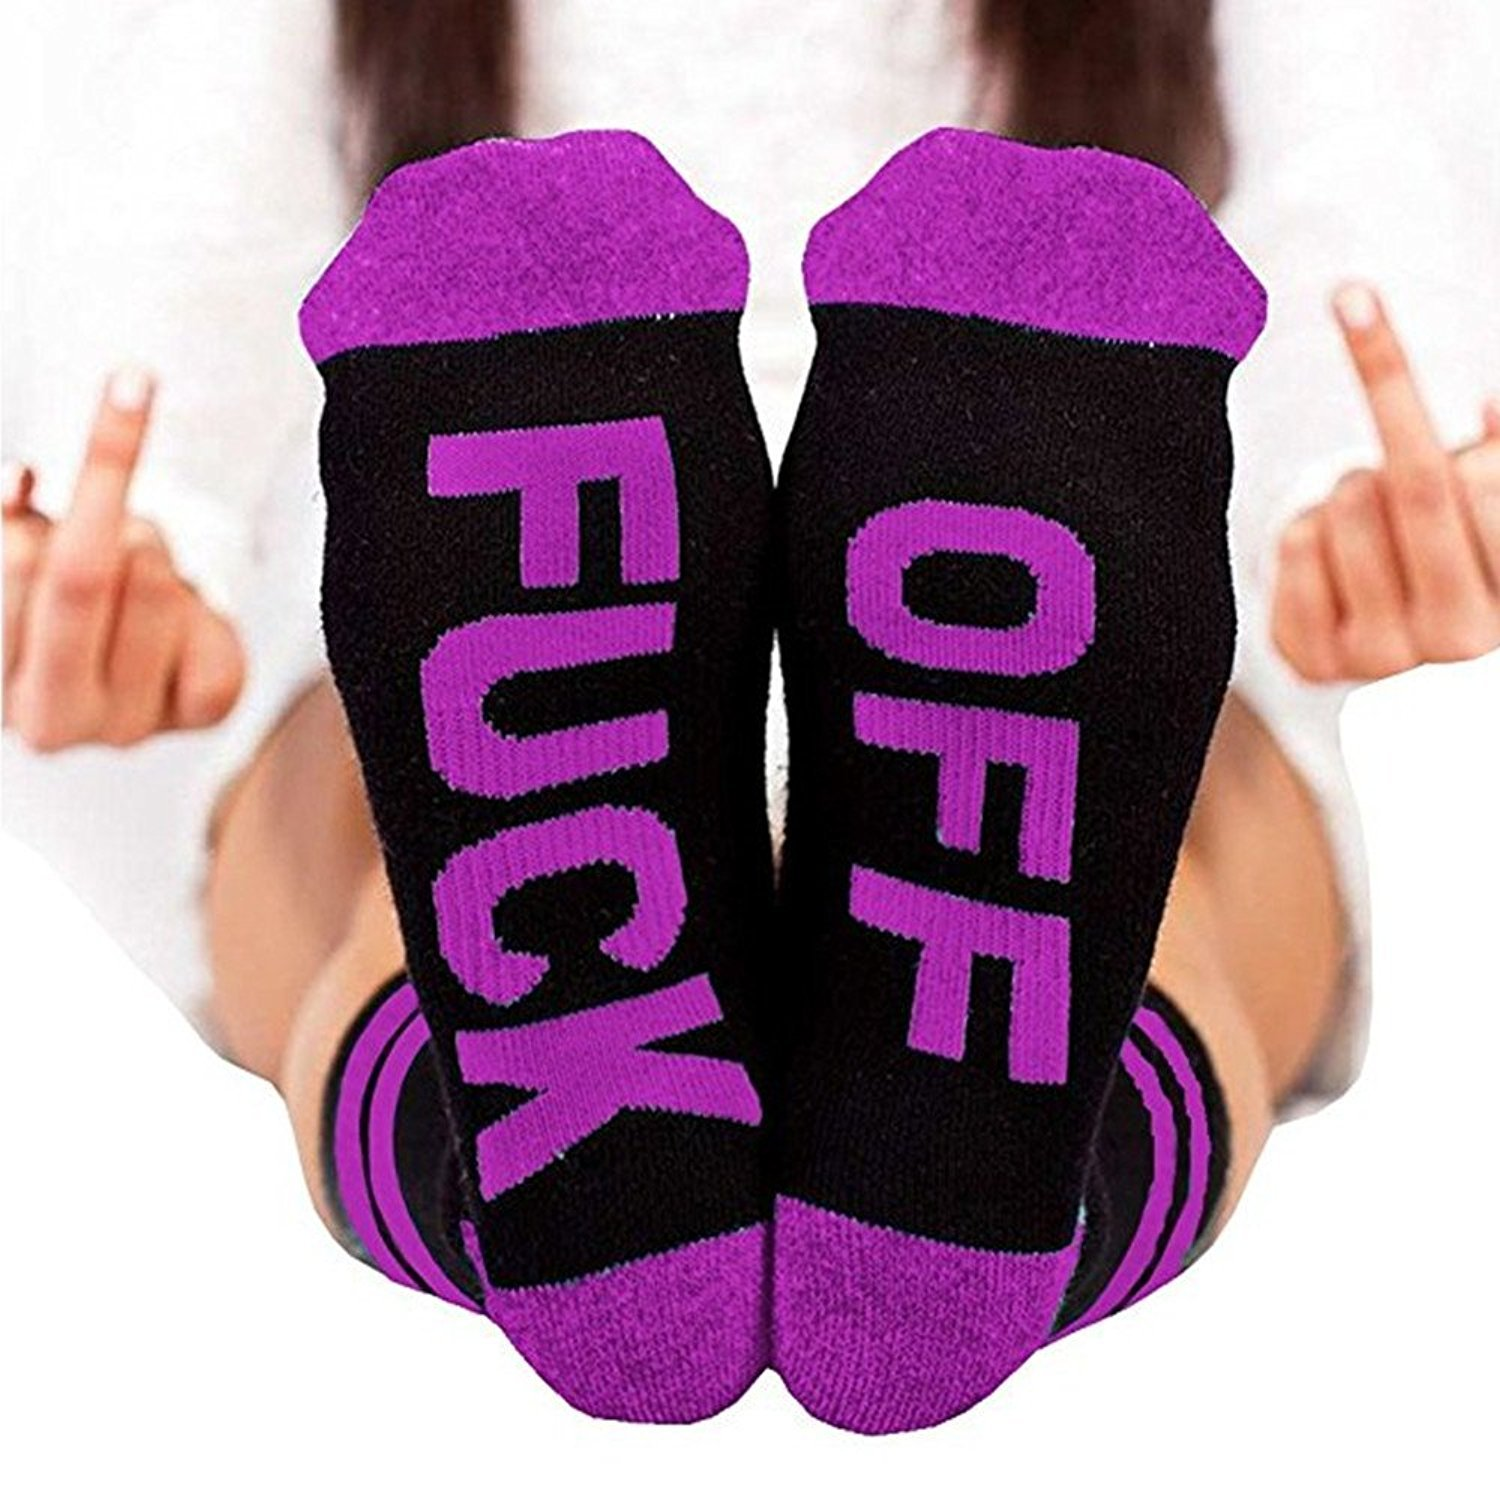 L&ZZ Unisex FUCK OFF Ribbed Knit Half Crew Socks Embroidery Swear Word Curse Printed Stockings